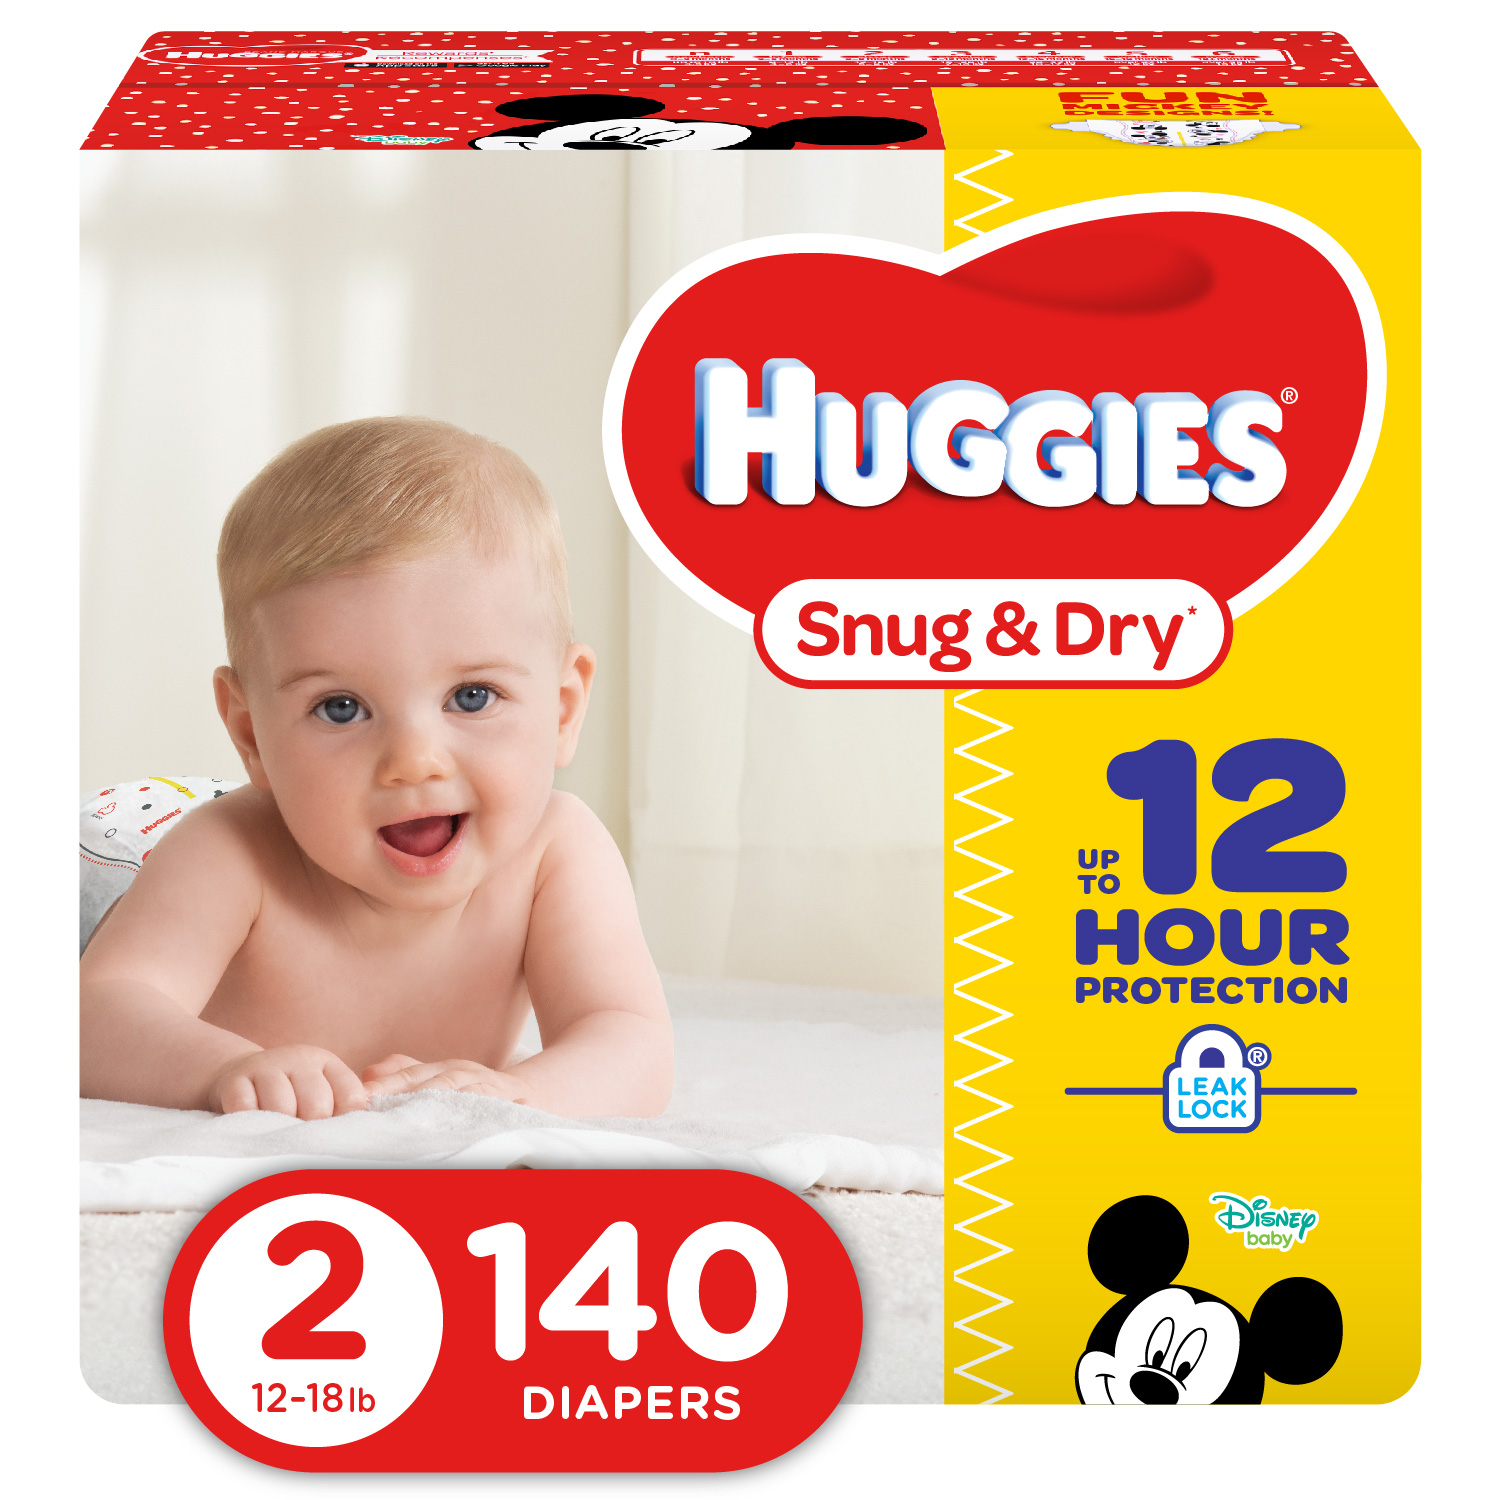 HUGGIES Snug & Dry Diapers, Size 2, 140 Ct